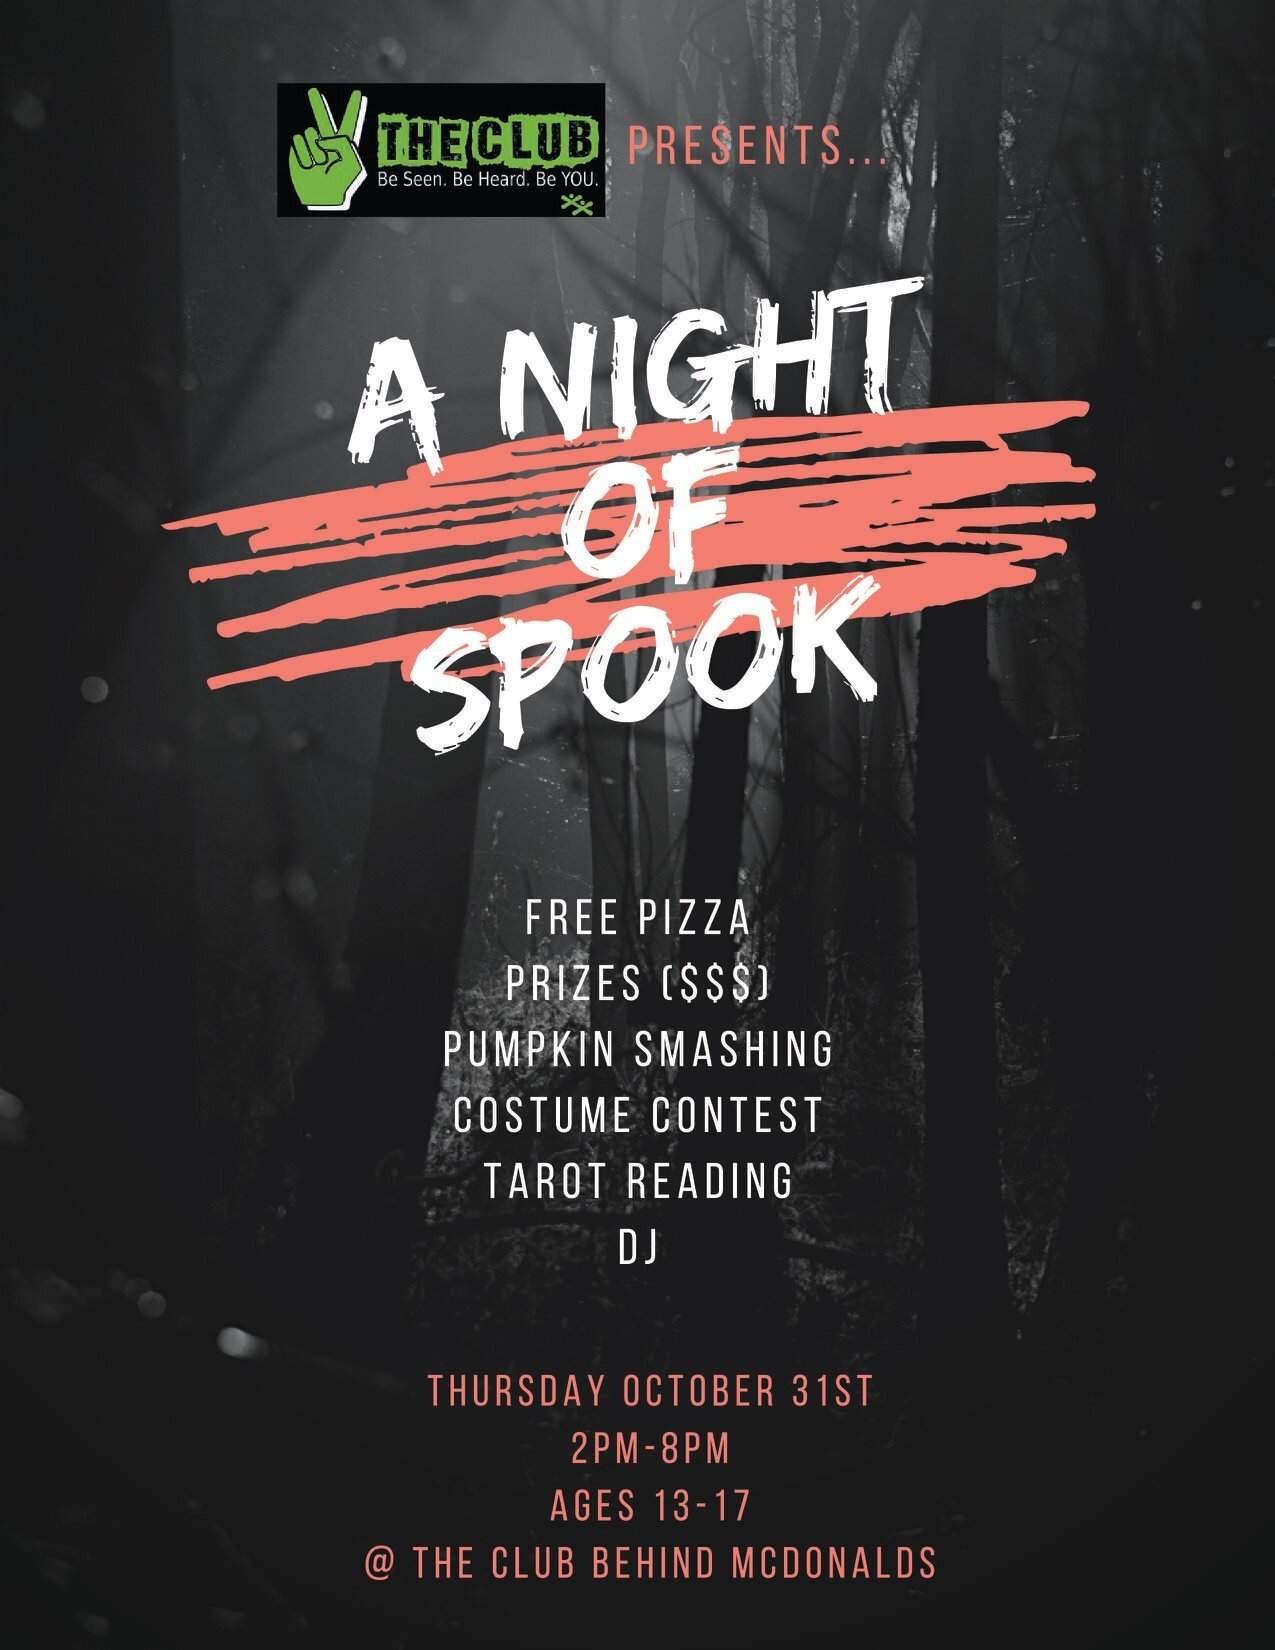 A Night of Spook - ages 13 - 17 - The Club - Teen Drop In CentreFree Pizza, Prizes, Pumpkin Smashing, Costume Contest, Tarot Reading and DJThursday, October 31st from 2pm to 8pm